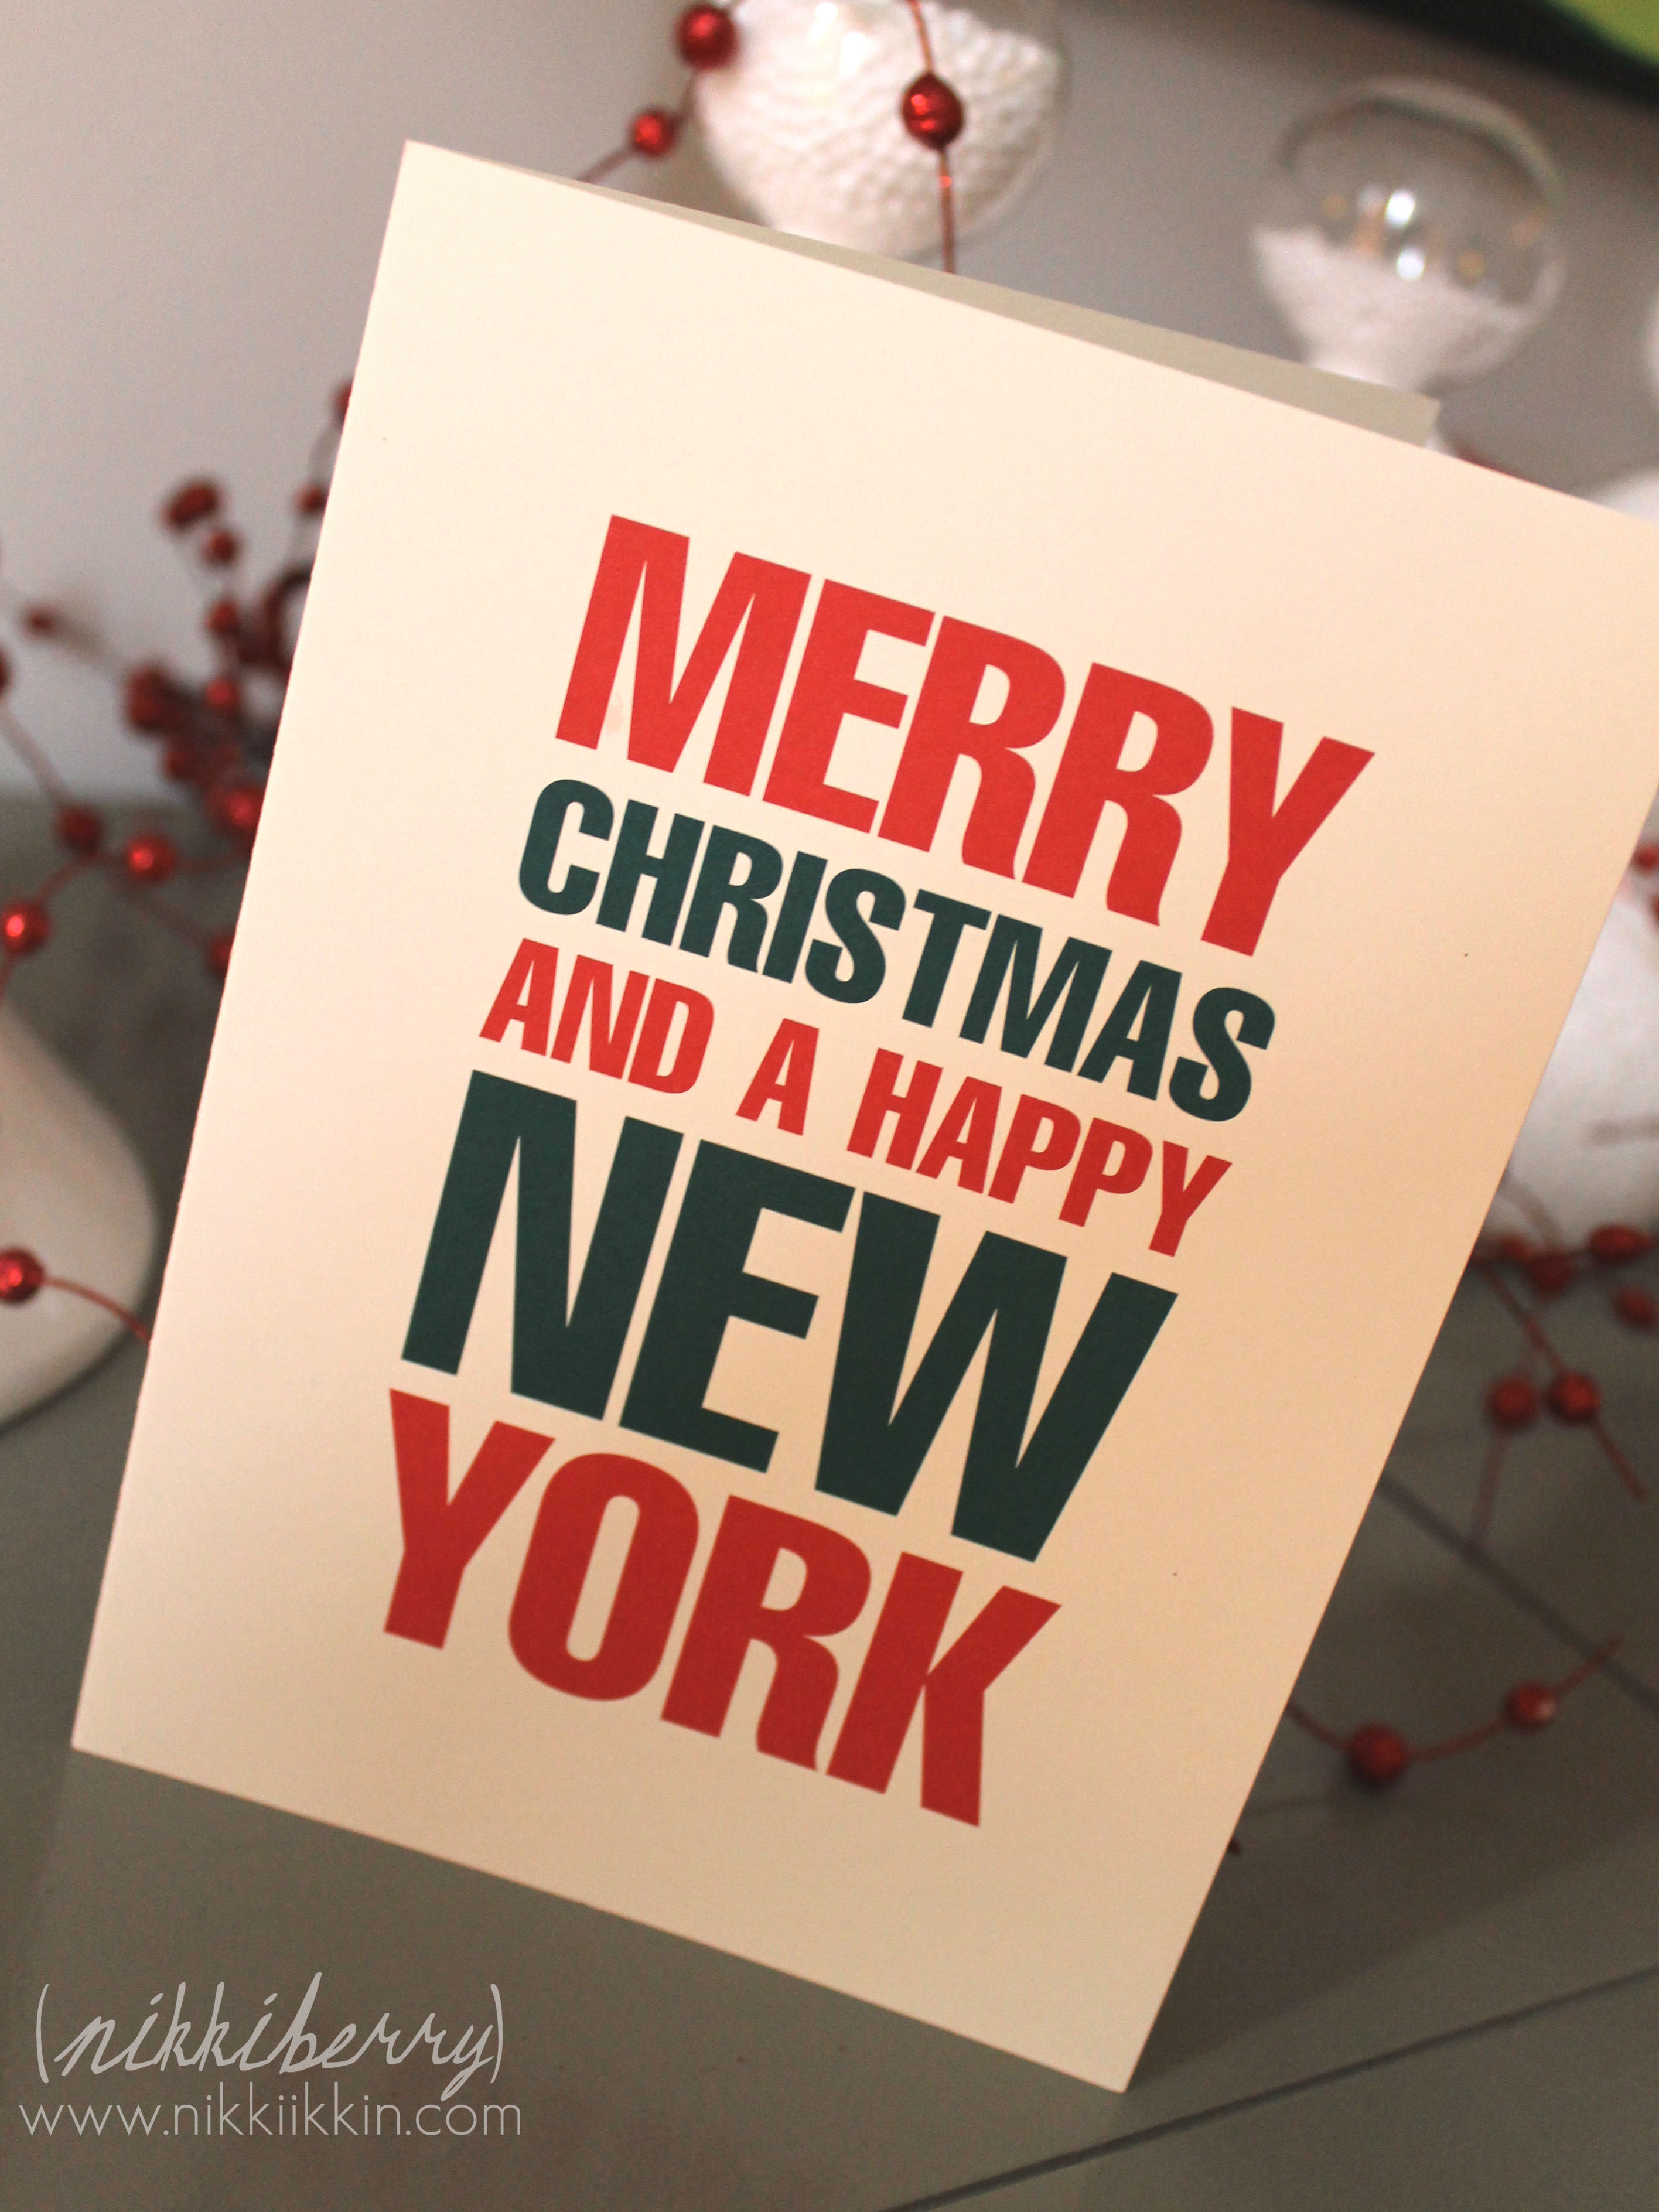 Nyc Greeting Cards Images - greetings formal letter